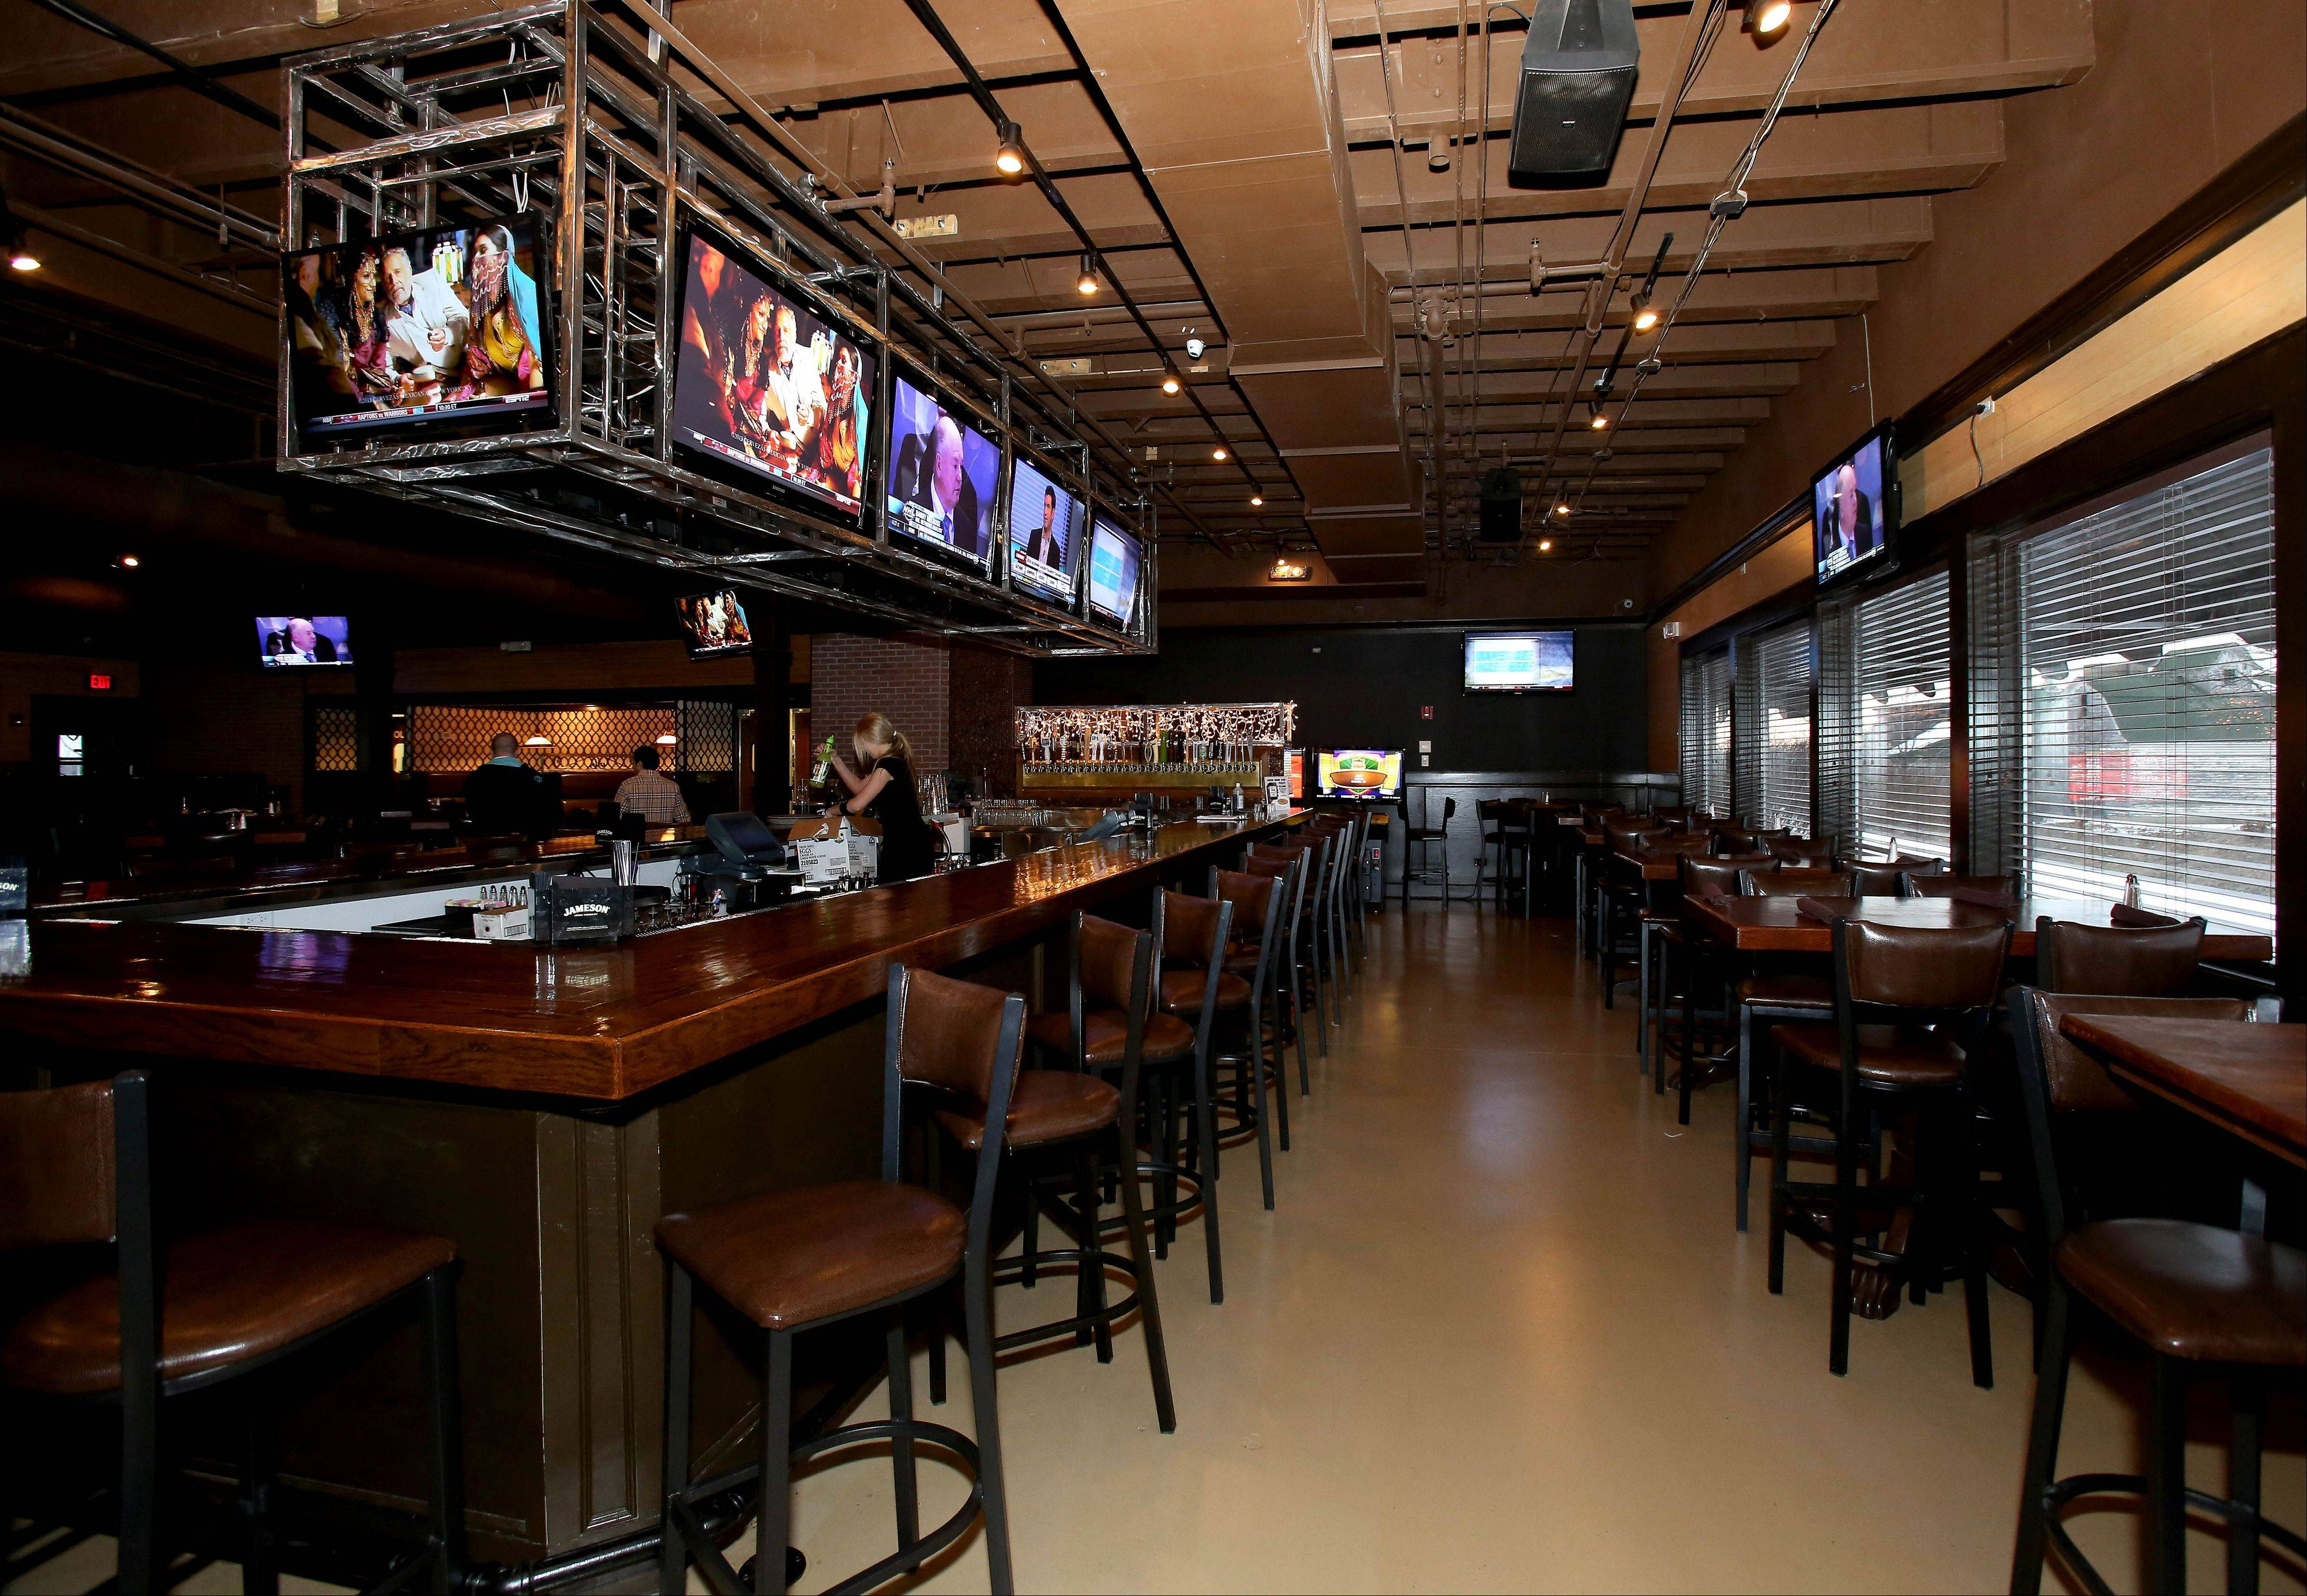 The Spotted Fox Ale House in St. Charles features a roomy bar area.